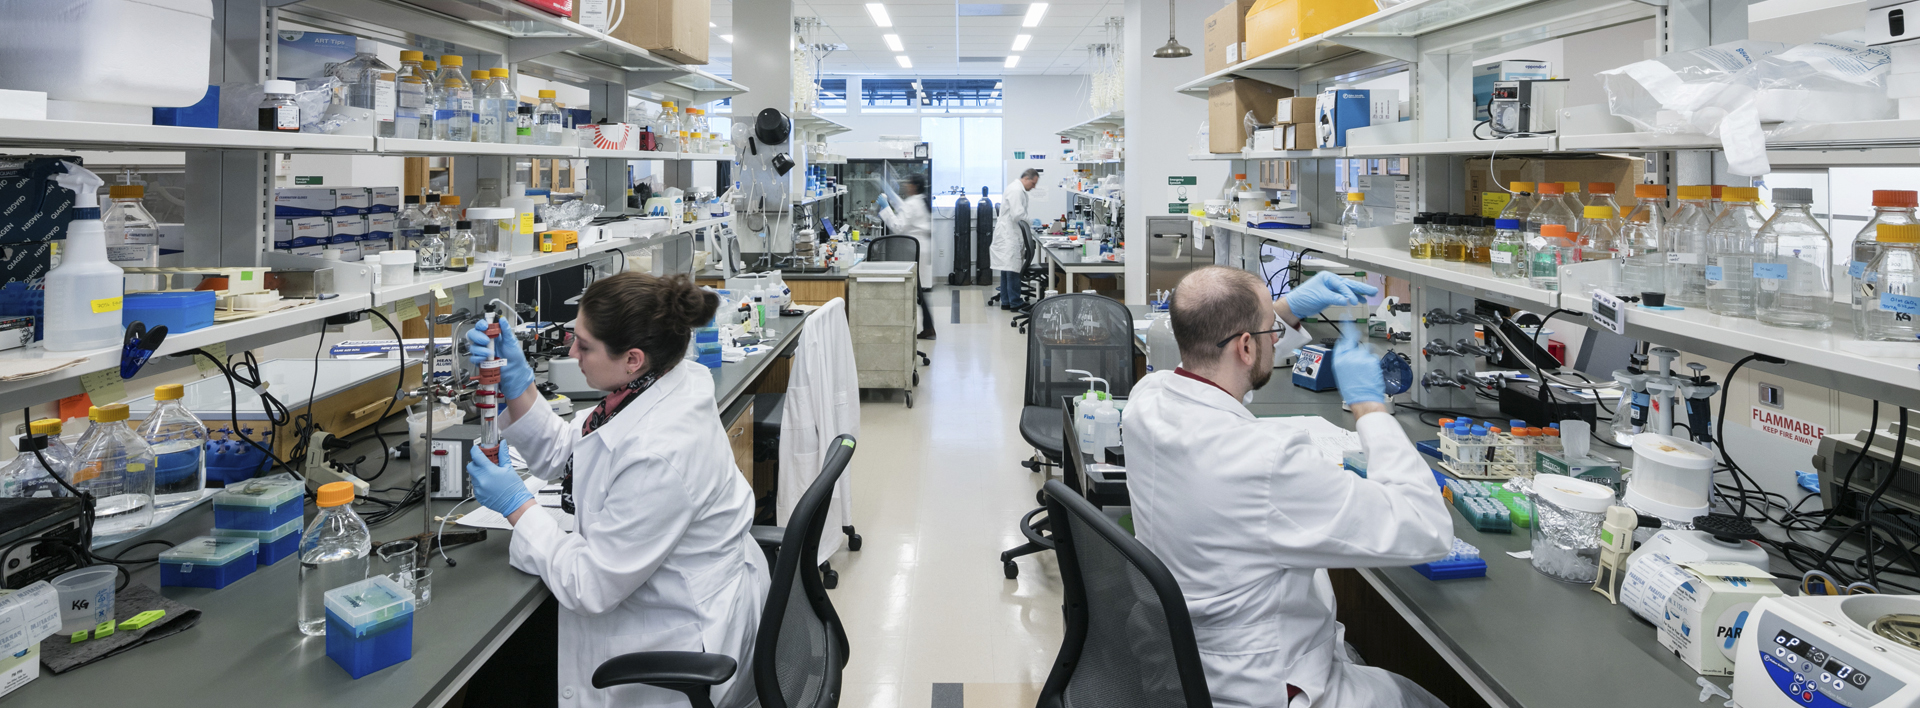 researchers in lab coats and gloves working in a lab